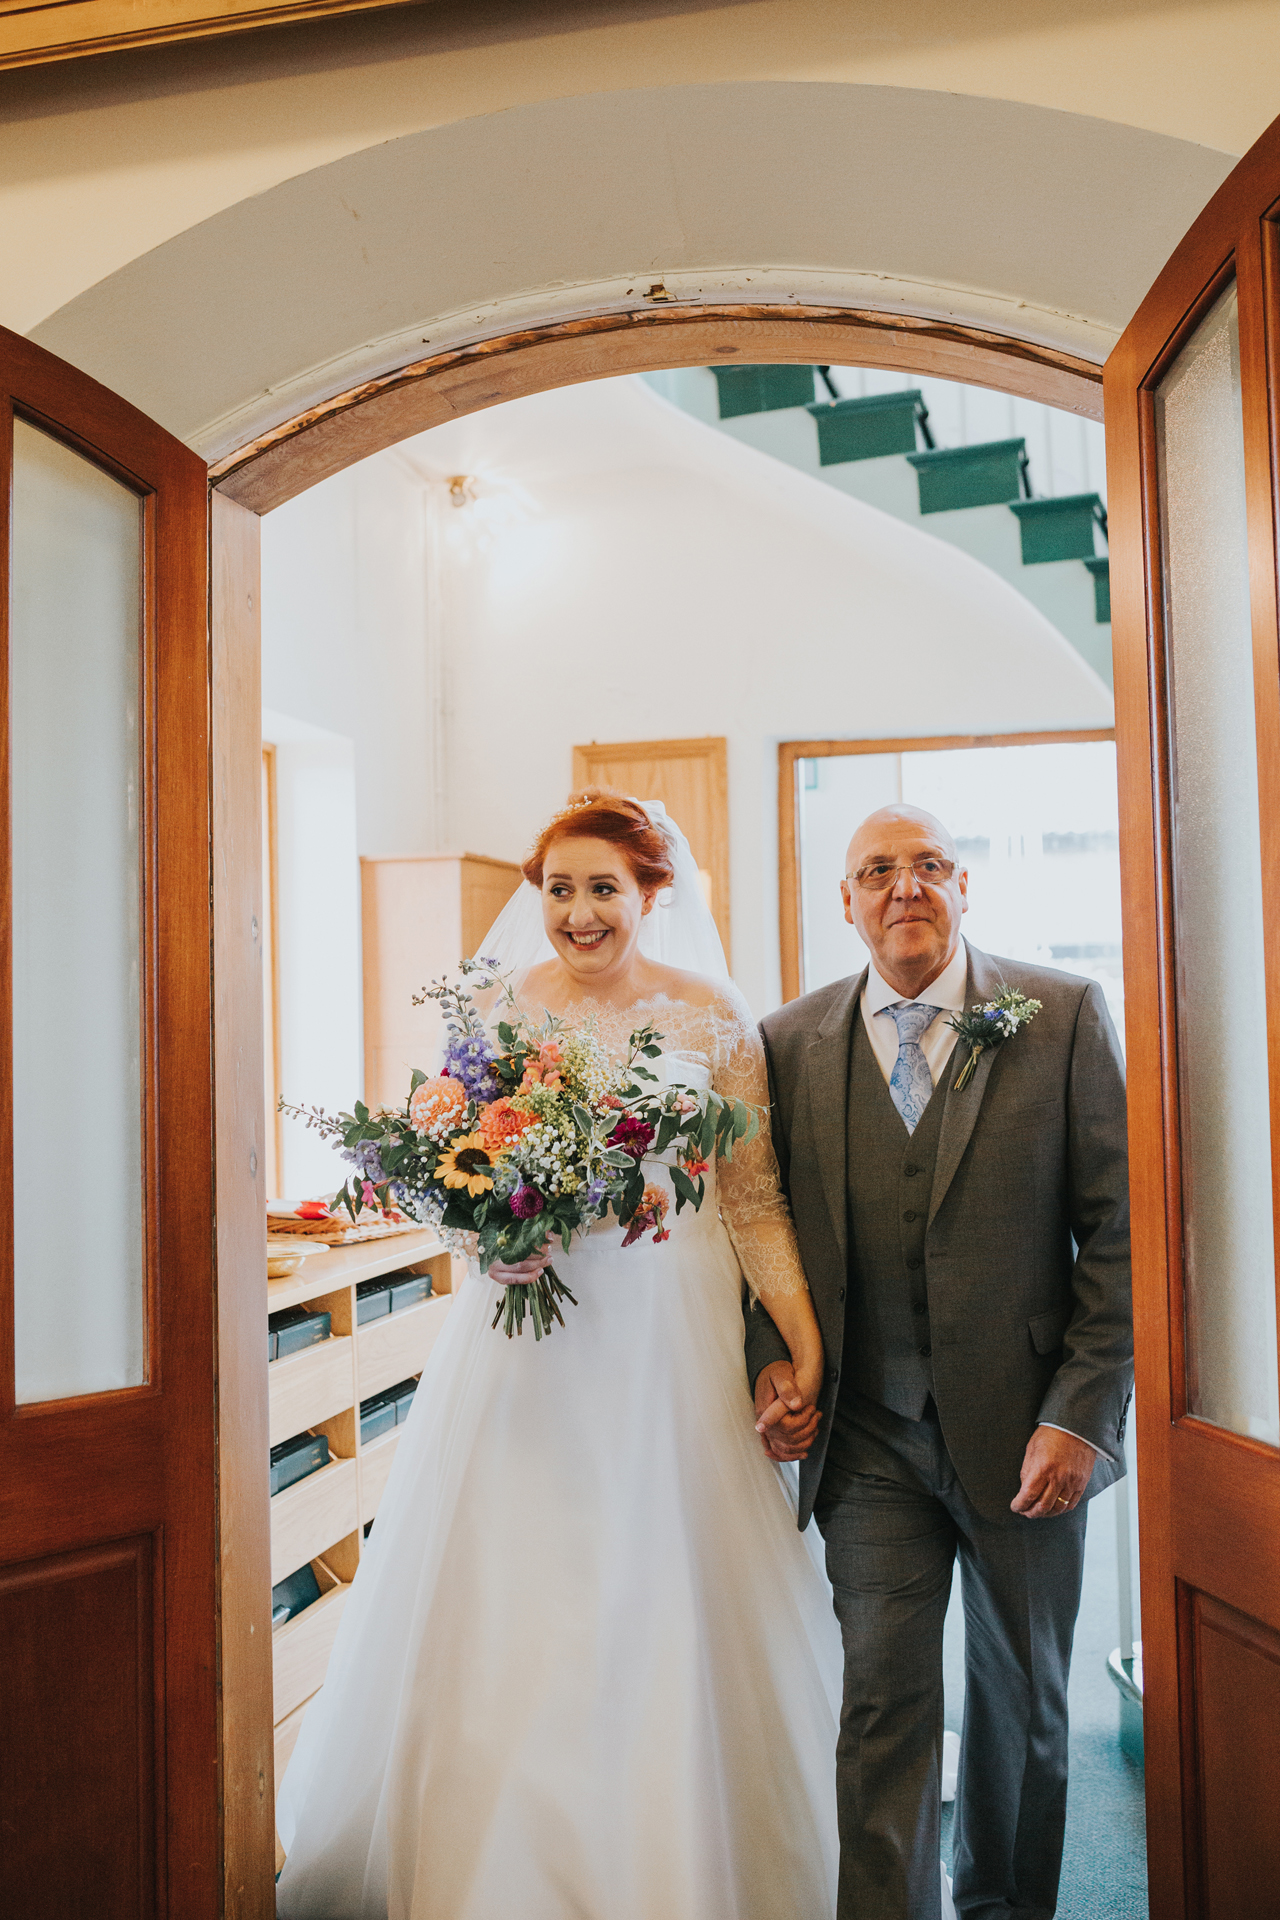 Bride entering the church with her father.